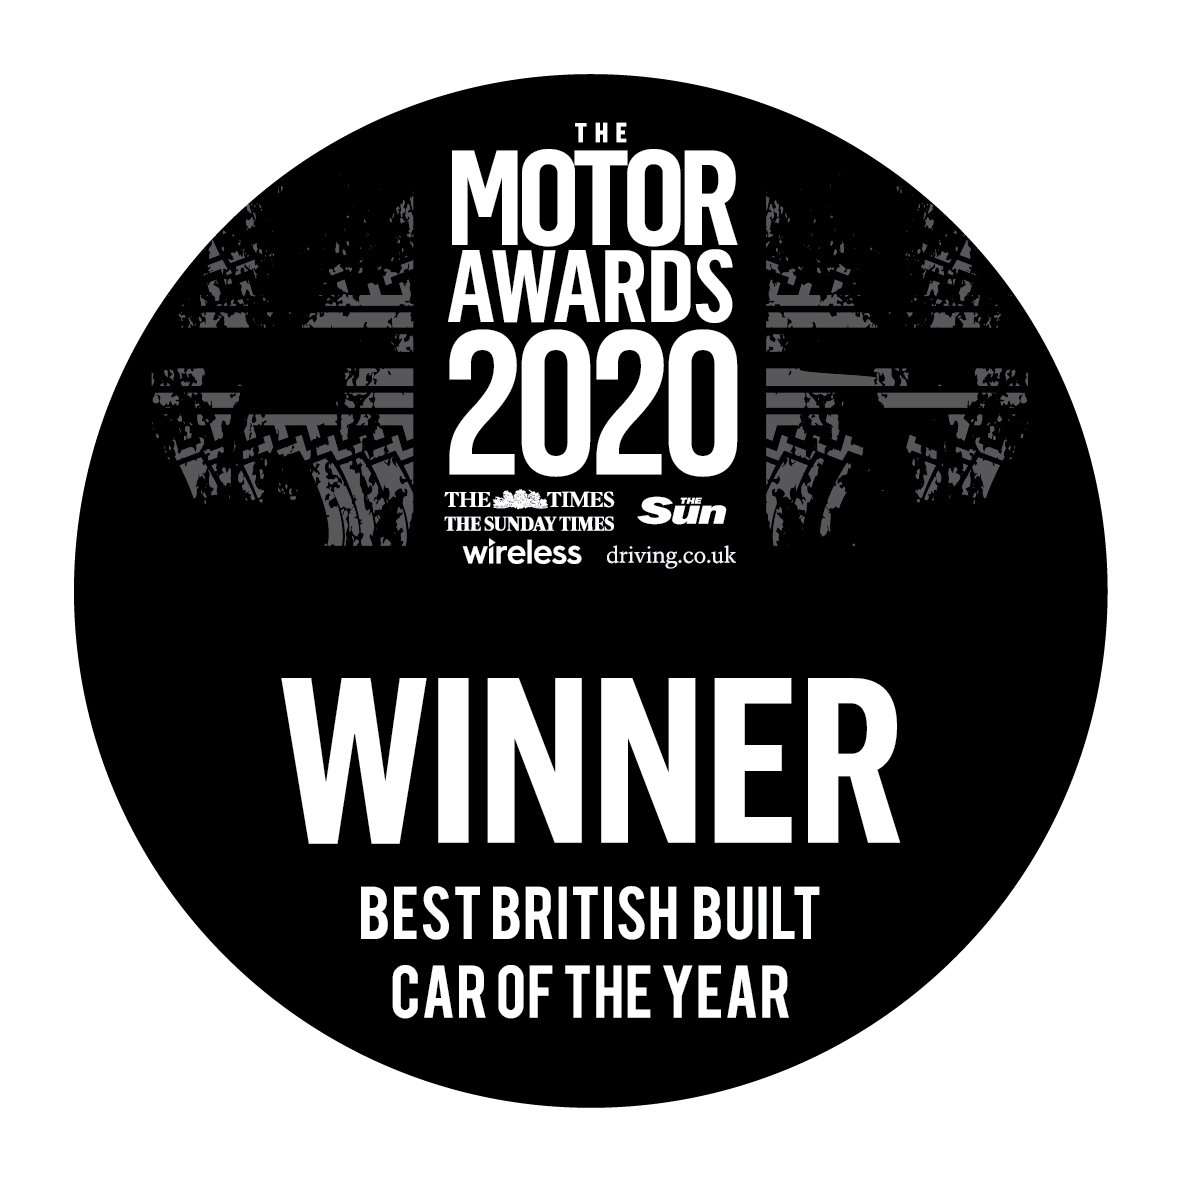 winners motor awards logo 2020